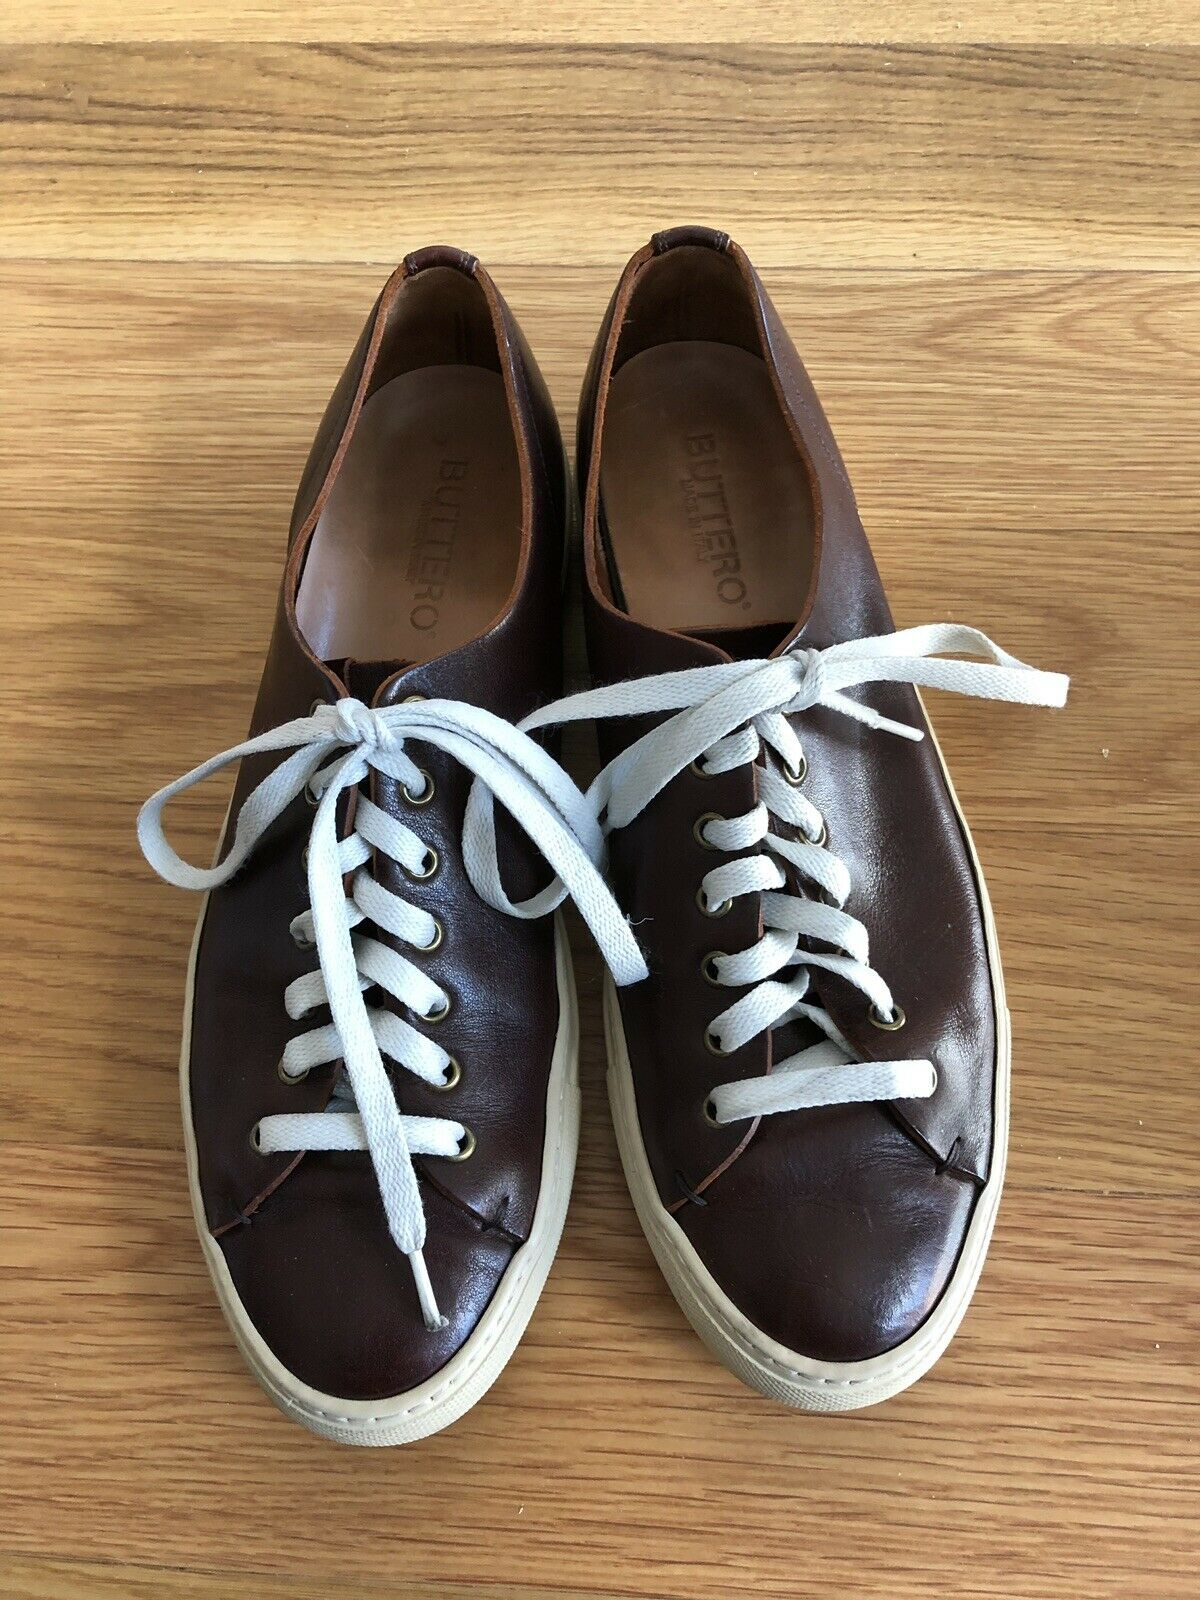 Buttero Tanino Low Sneaker, Size 42.5 US 11, Burgundy Leather, Made in